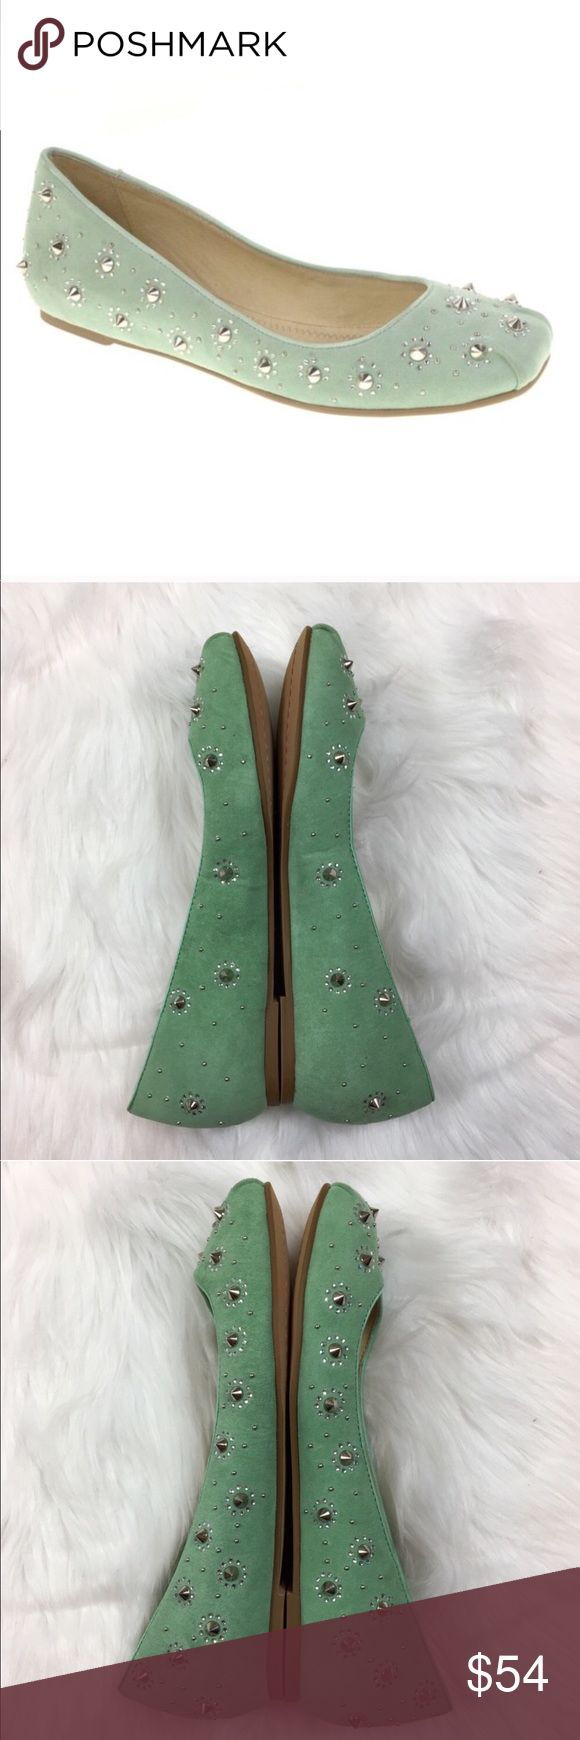 Chinese Laundry Kristin Cavallari Amore Flats Chinese Laundry Kristin Cavallari Amore Flats. Size 7. These are in excellent condition but have small flaw as pictured above toe. No box no dust bag. All studs are intact.  ❌I do not Trade 🙅🏻 Or model💲 Posh Transactions ONLY Chinese Laundry Shoes Flats & Loafers